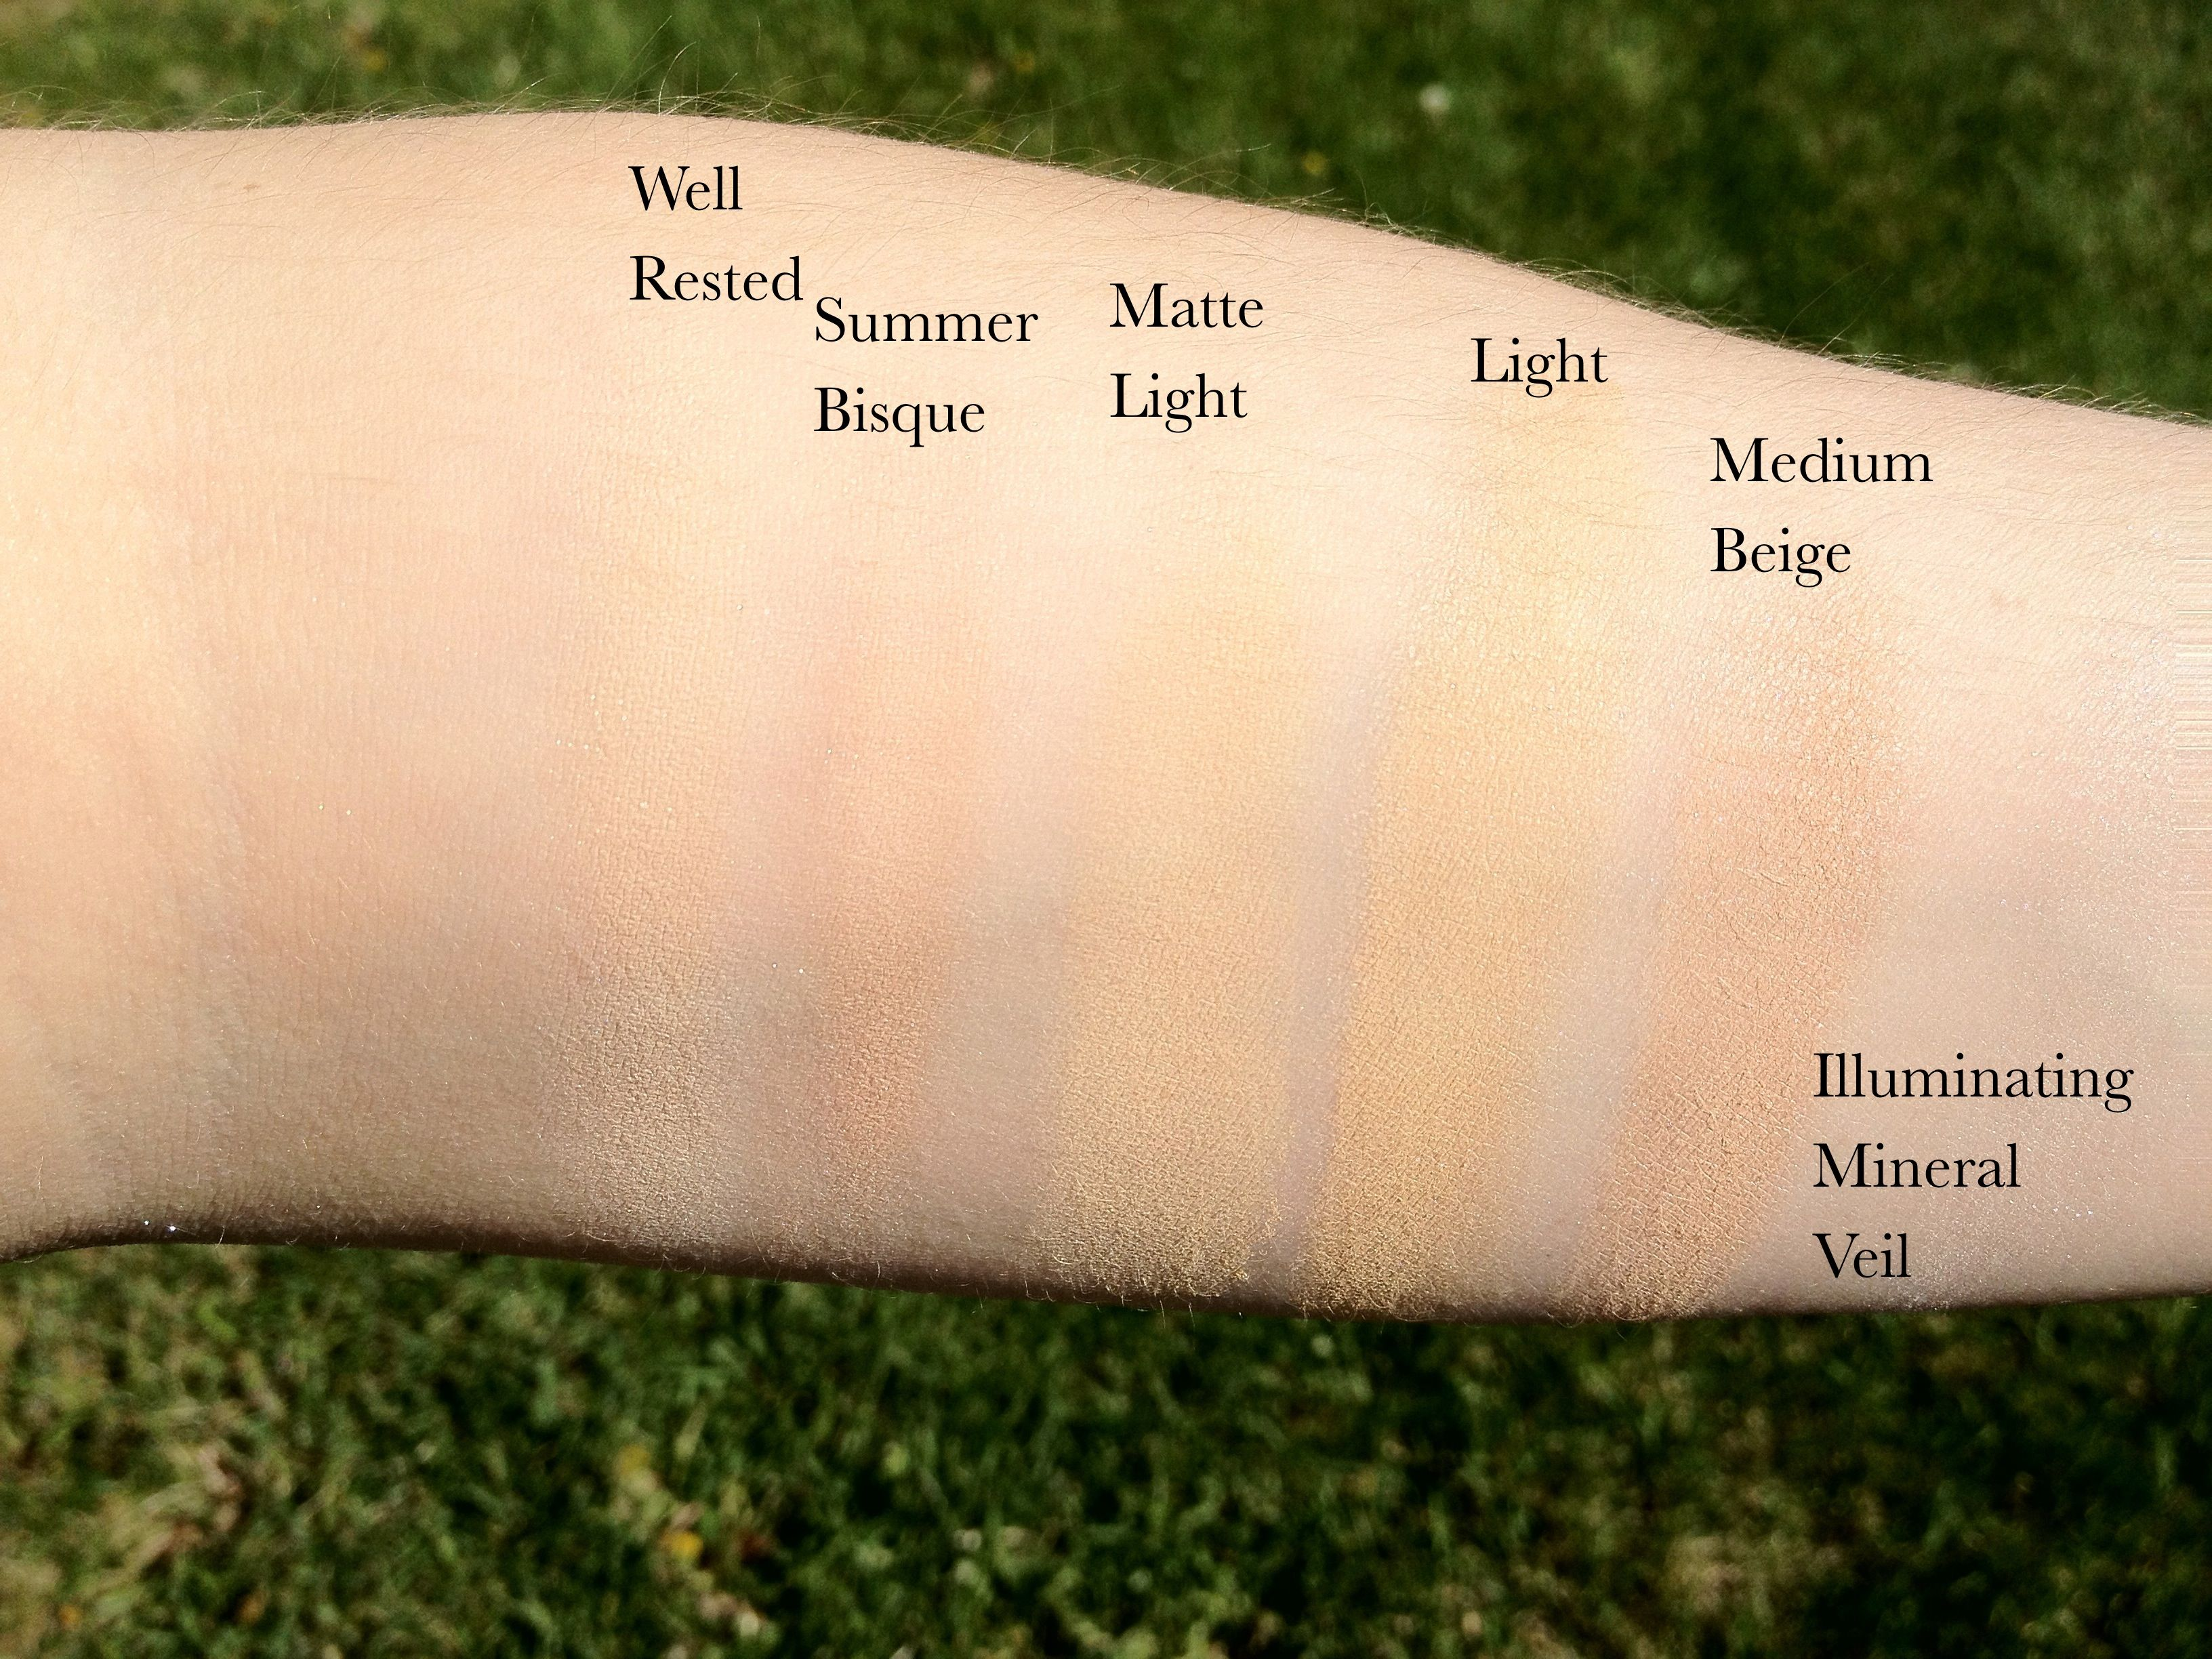 Bare Minerals Concealer Amp Foundation Swatches Pretty